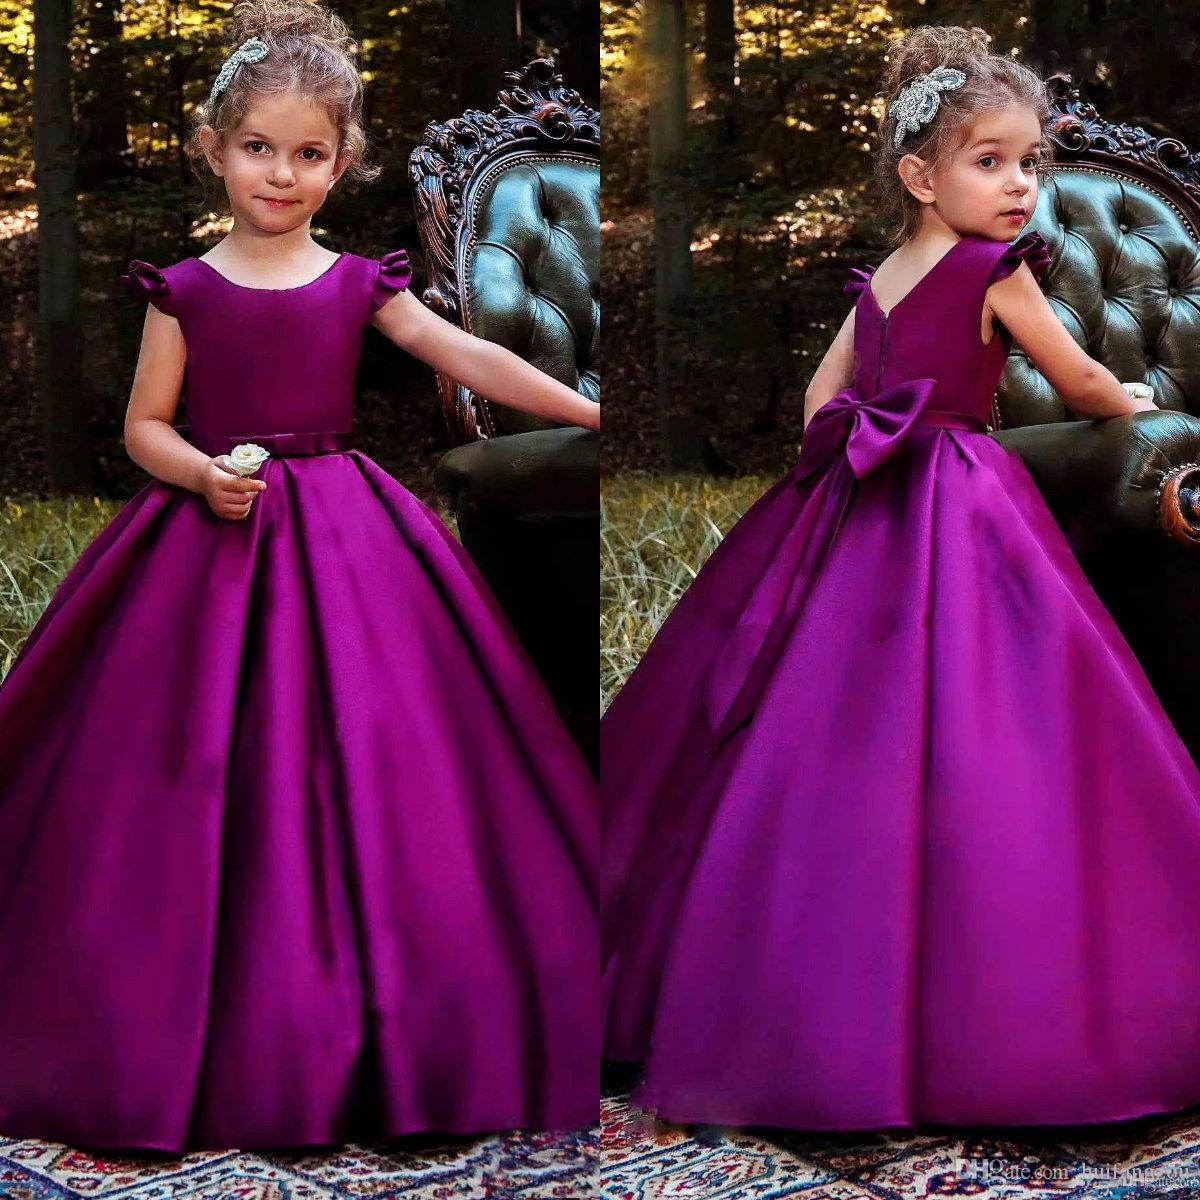 82526e1717e 2019 Kids Designer Clothes Flower Girl Dresses With Jewel Neck Satin Bow  Sash Ball Gown Girls Pageant Dresses First Communion Dress My Girl Dress  Navy ...